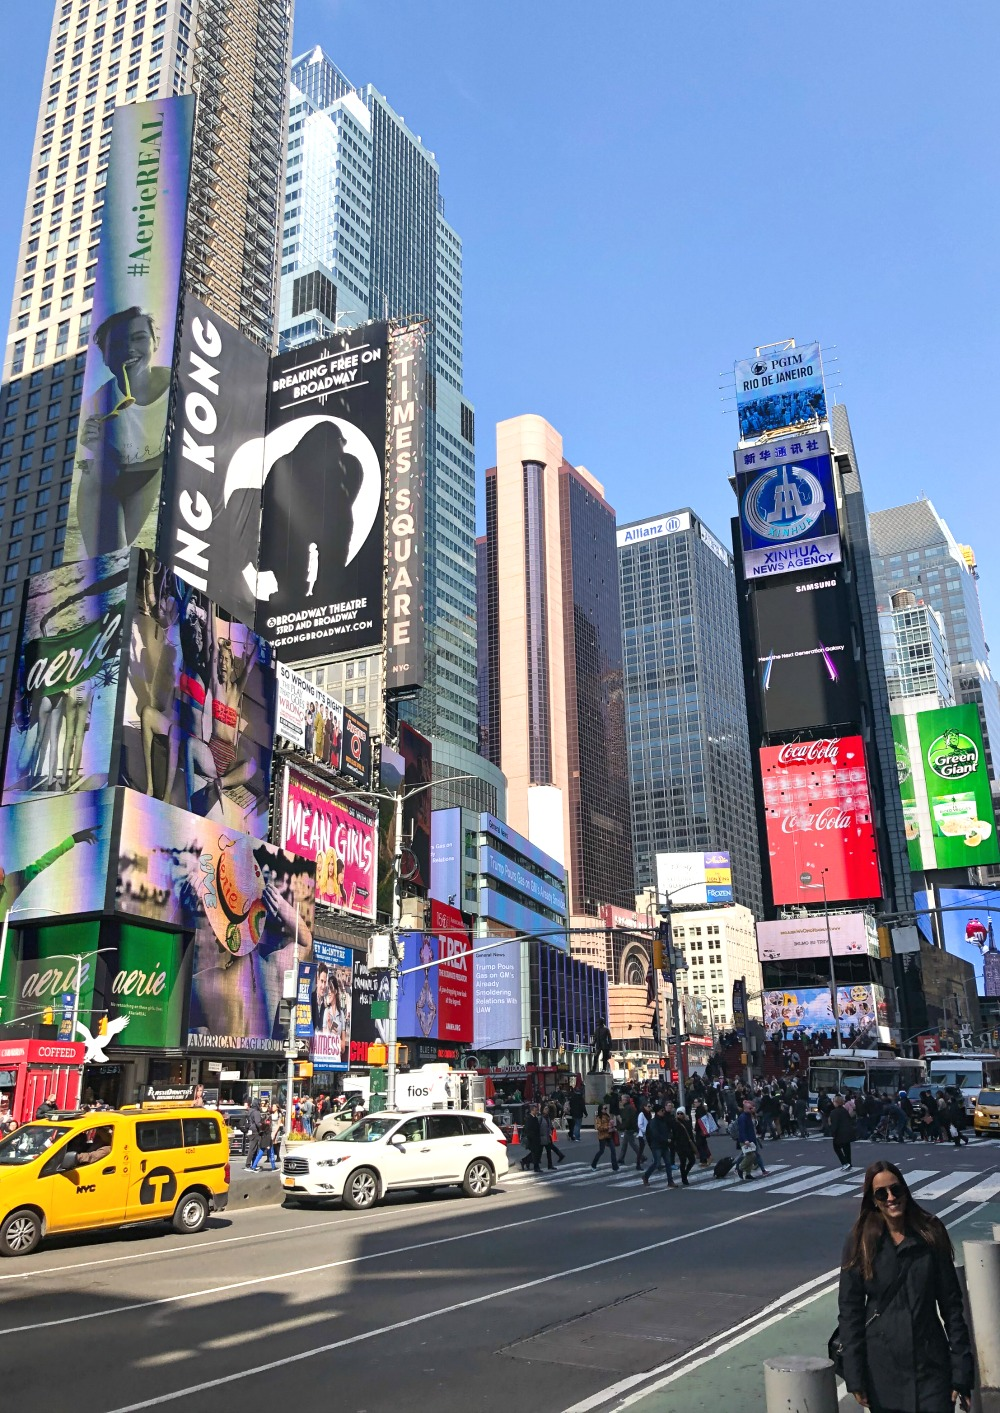 Affordable New York City Travel Guide I Times Square #Travel #TravelGuide #NYC